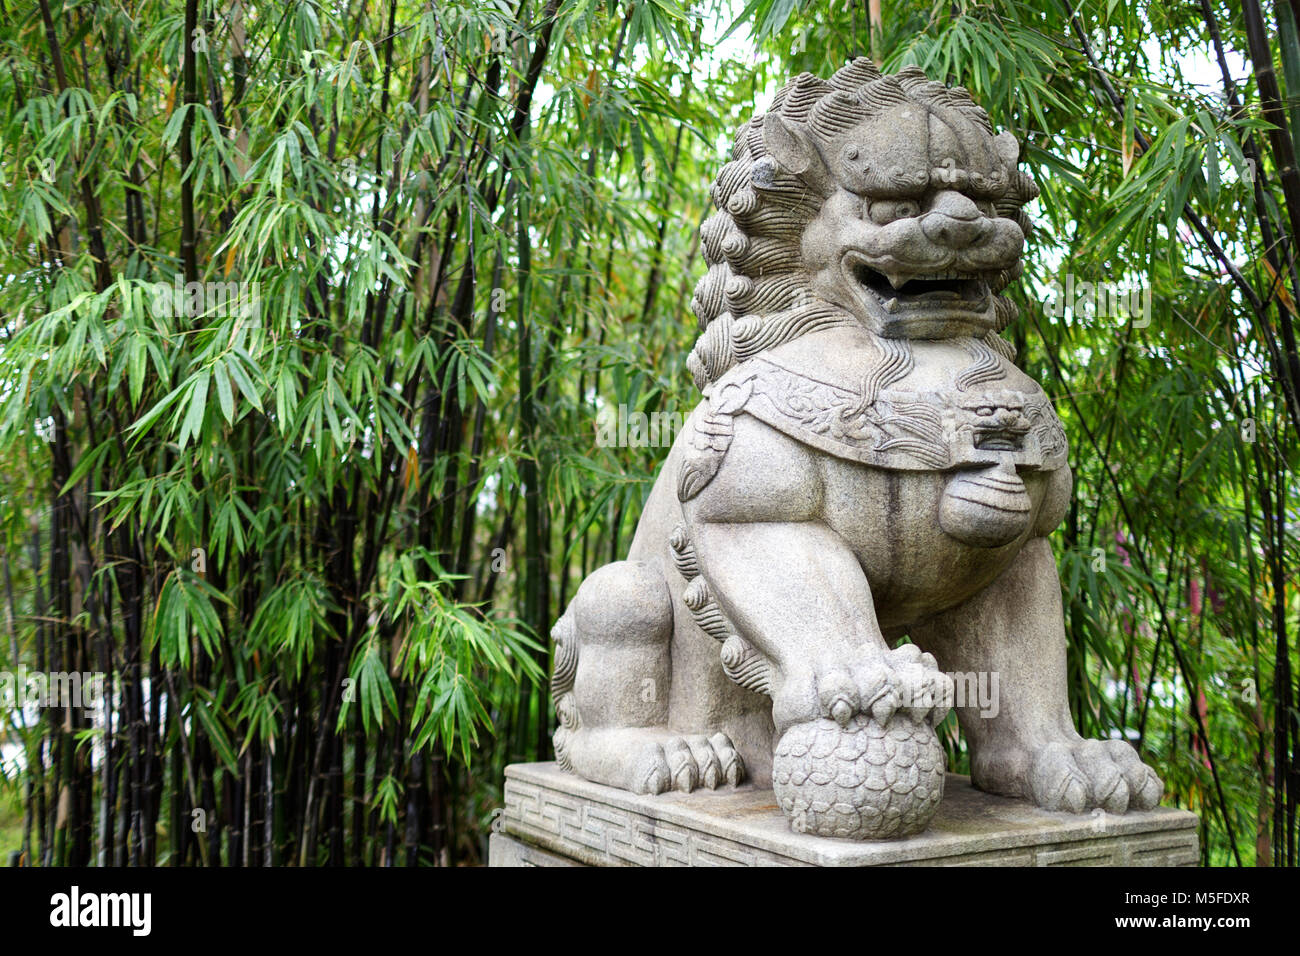 A Stone Lion Statue At The Gardens By The Bay In Singapore